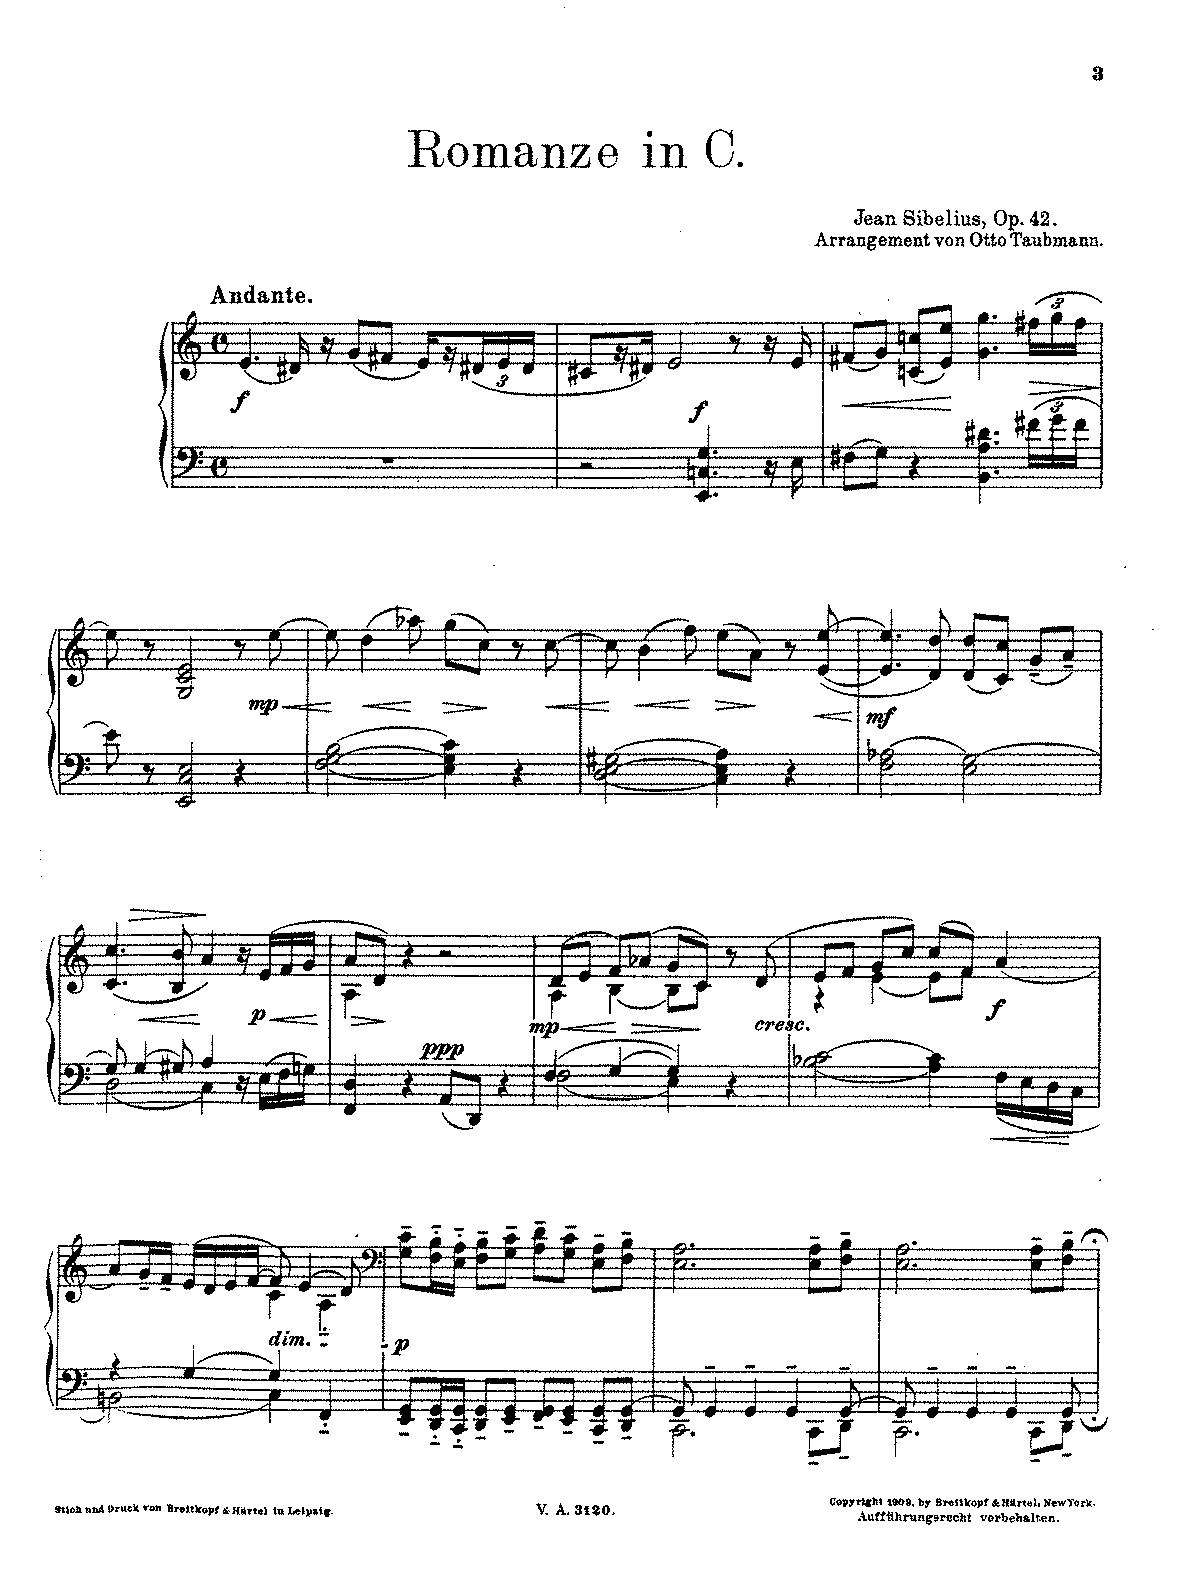 Sibelius - Romance in C for string orchestra, Op.42 (trans. Taubmann - piano).pdf